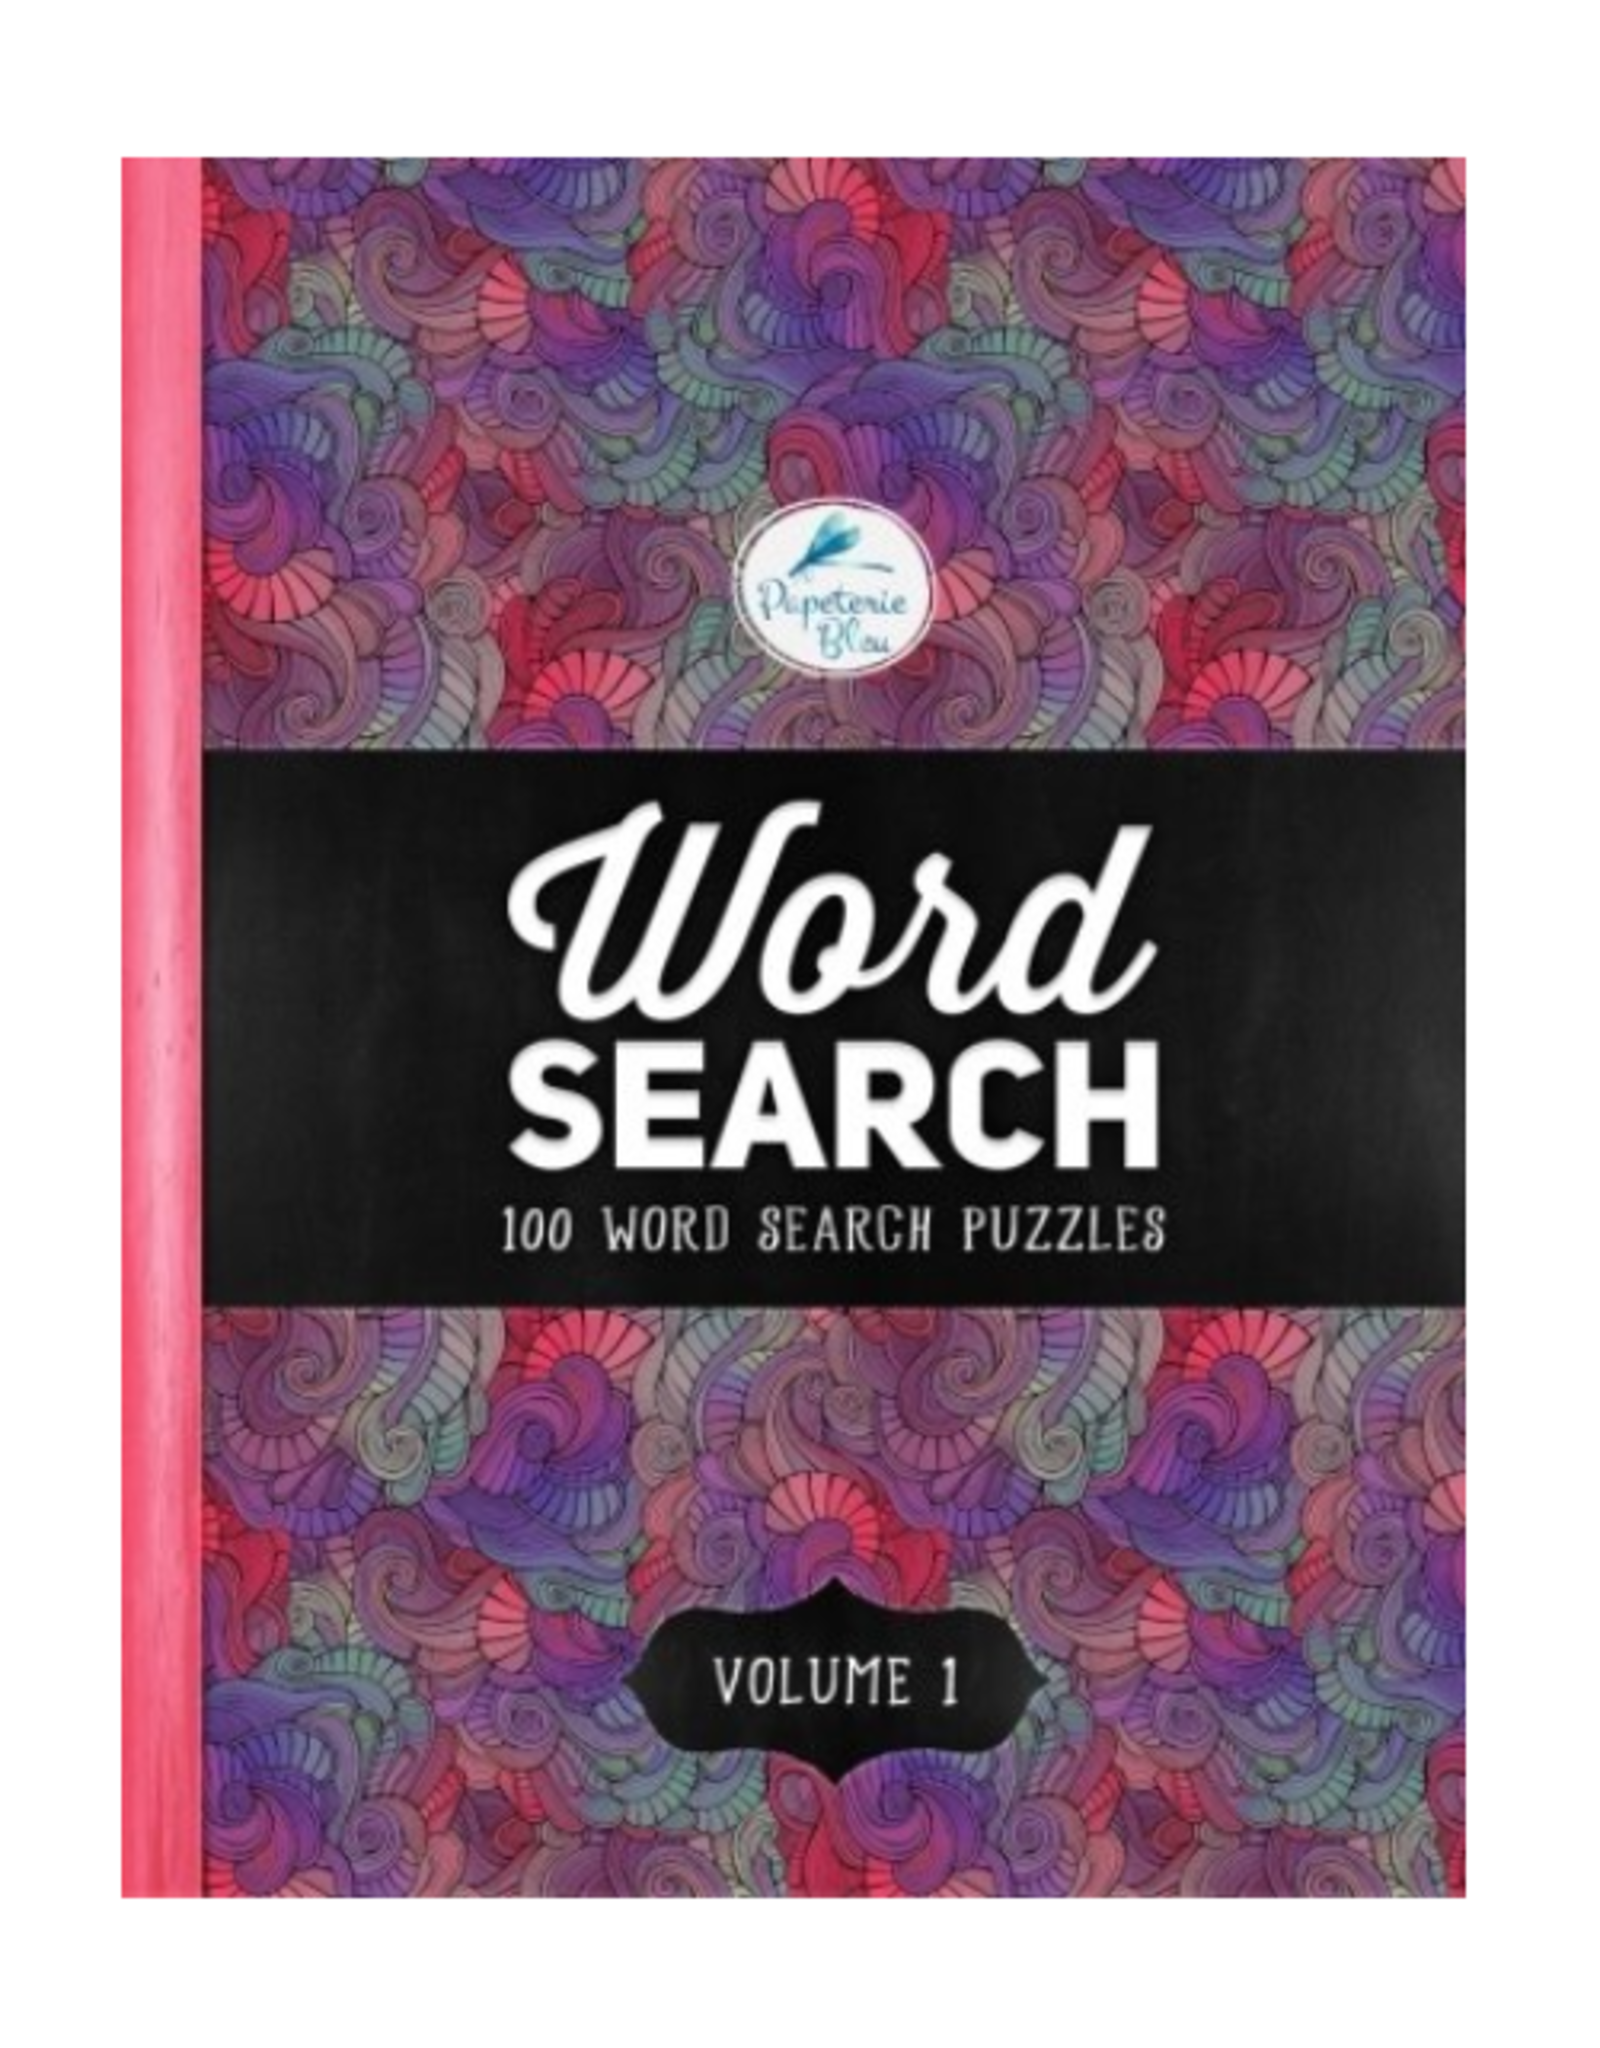 Papeterie Bleu Activity Book, 100 Word Search Puzzles: Volume 1